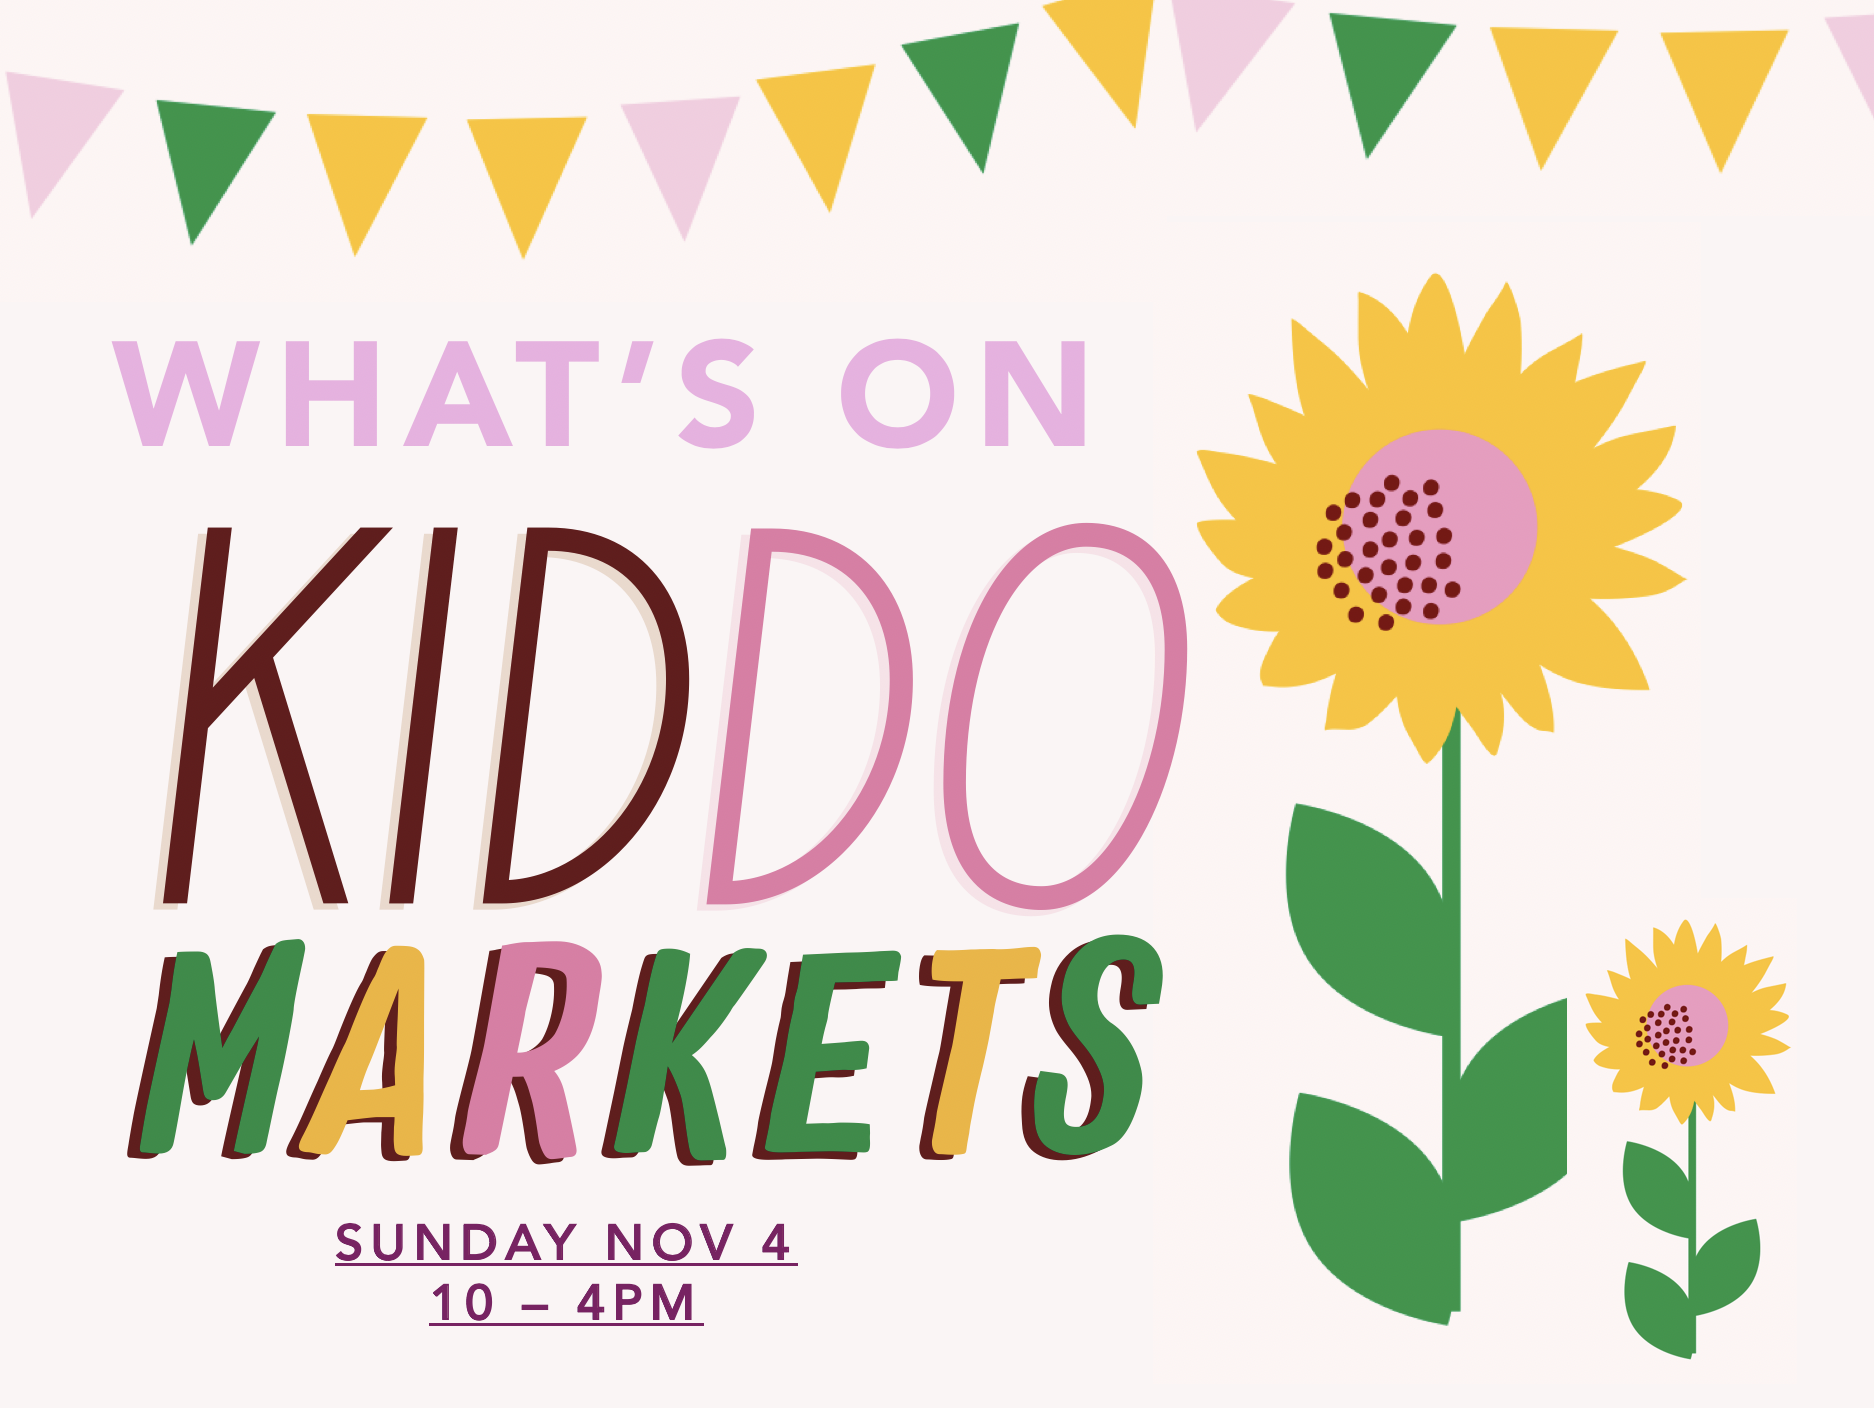 WHAT'S ON AT KIDDO MARKETS